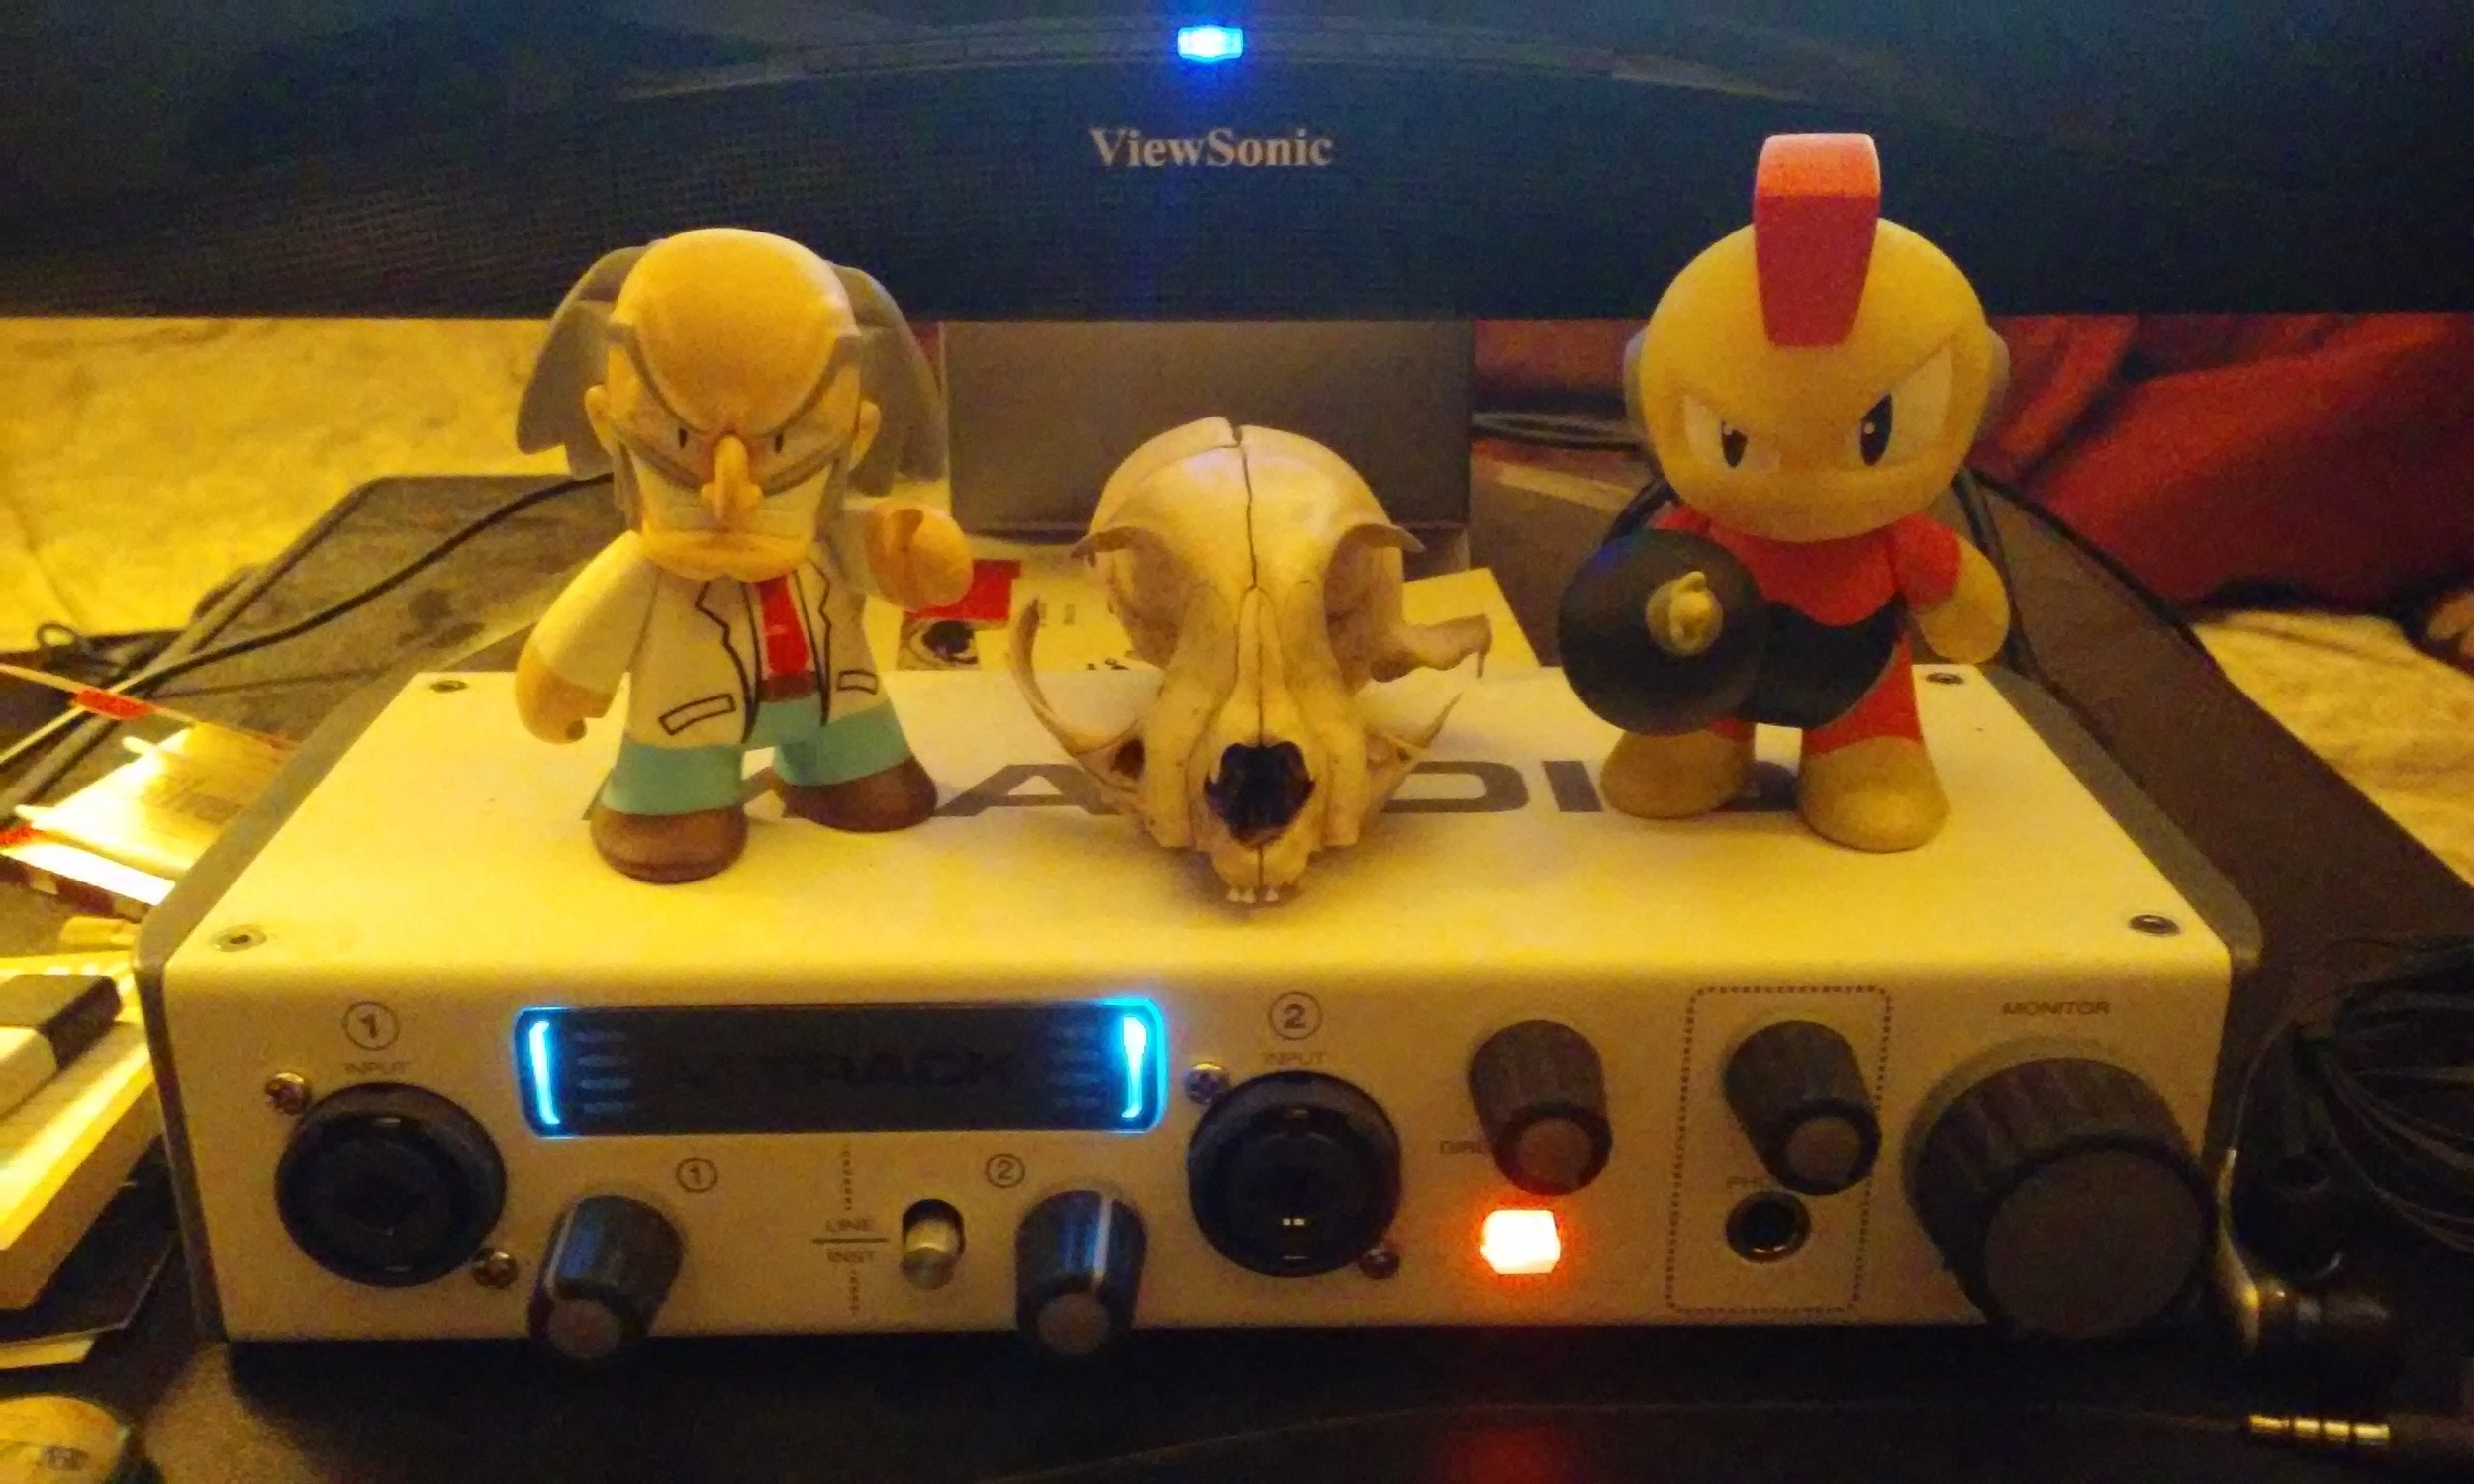 Meet Dr. Wily and Bomb-Man, Randle's new evil workstation guardians. They offered up the cat skull by way of a resume, so clearly, business is meant by both of them. Consider that in your calculations, Interweb ne'er-do-wells.